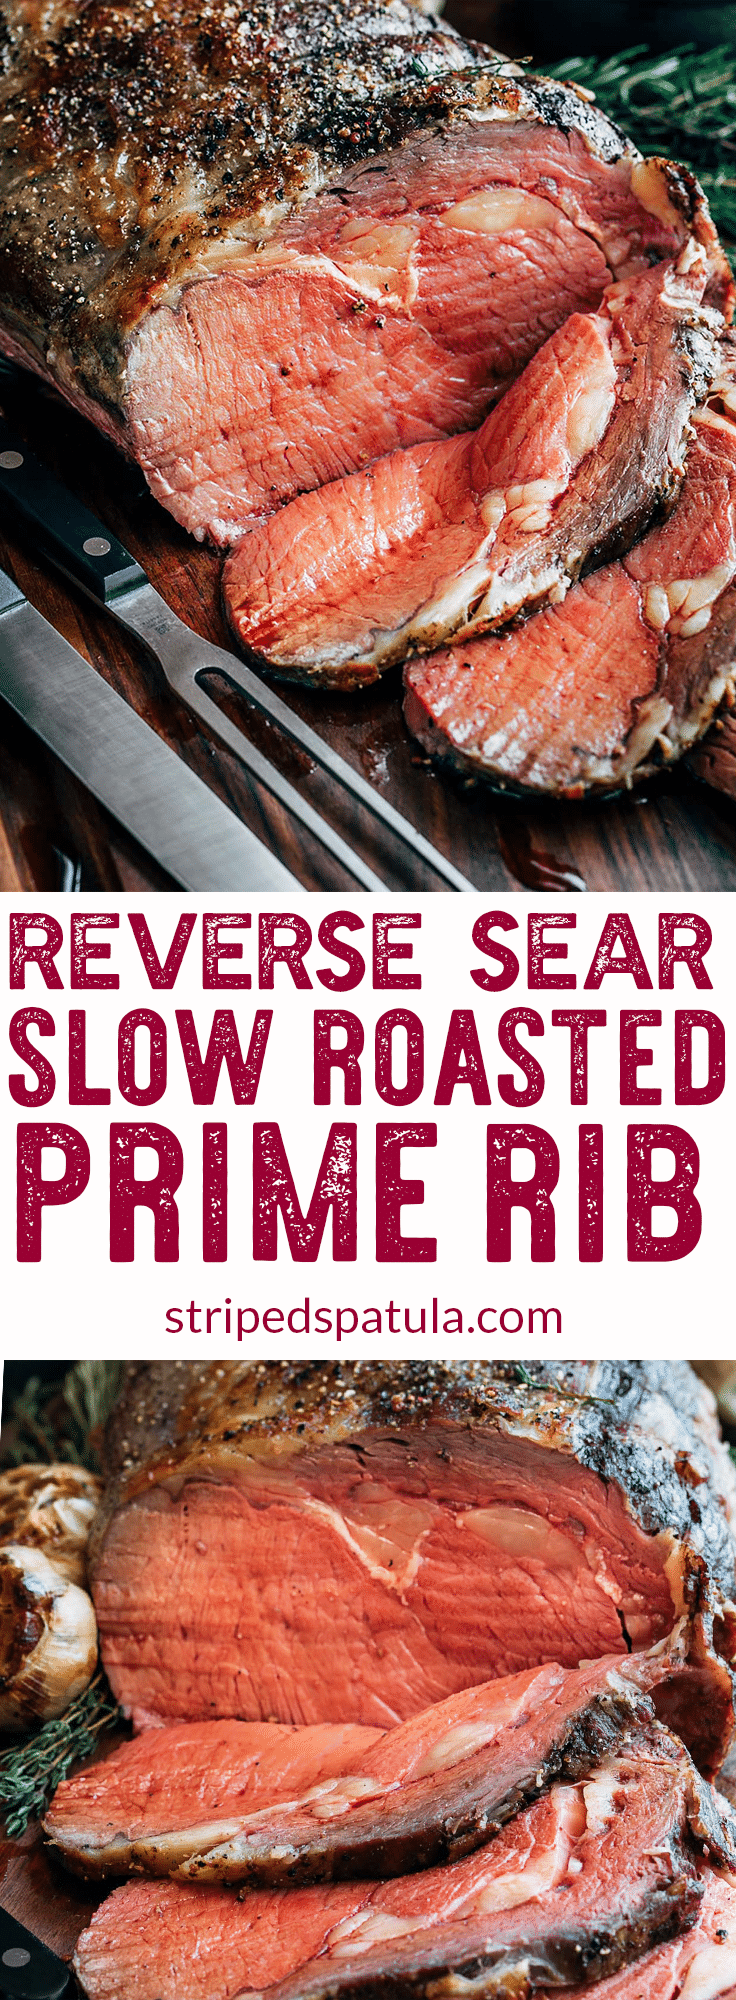 Slow Roasted Prime Rib Recipe | Prime Rib Roast Recipe | Prime Rib How to Cook | Standing Rib Roast Recipe | Standing Rib Roast Christmas | Reverse Sear Prime Rib Roast | Christmas Dinner Ideas | Christmas Dinner Recipes | #primeribrecipe #primeribroast #primeribbeef #primerib #stripedspatula #christmasdinner #christmasdinnerparty